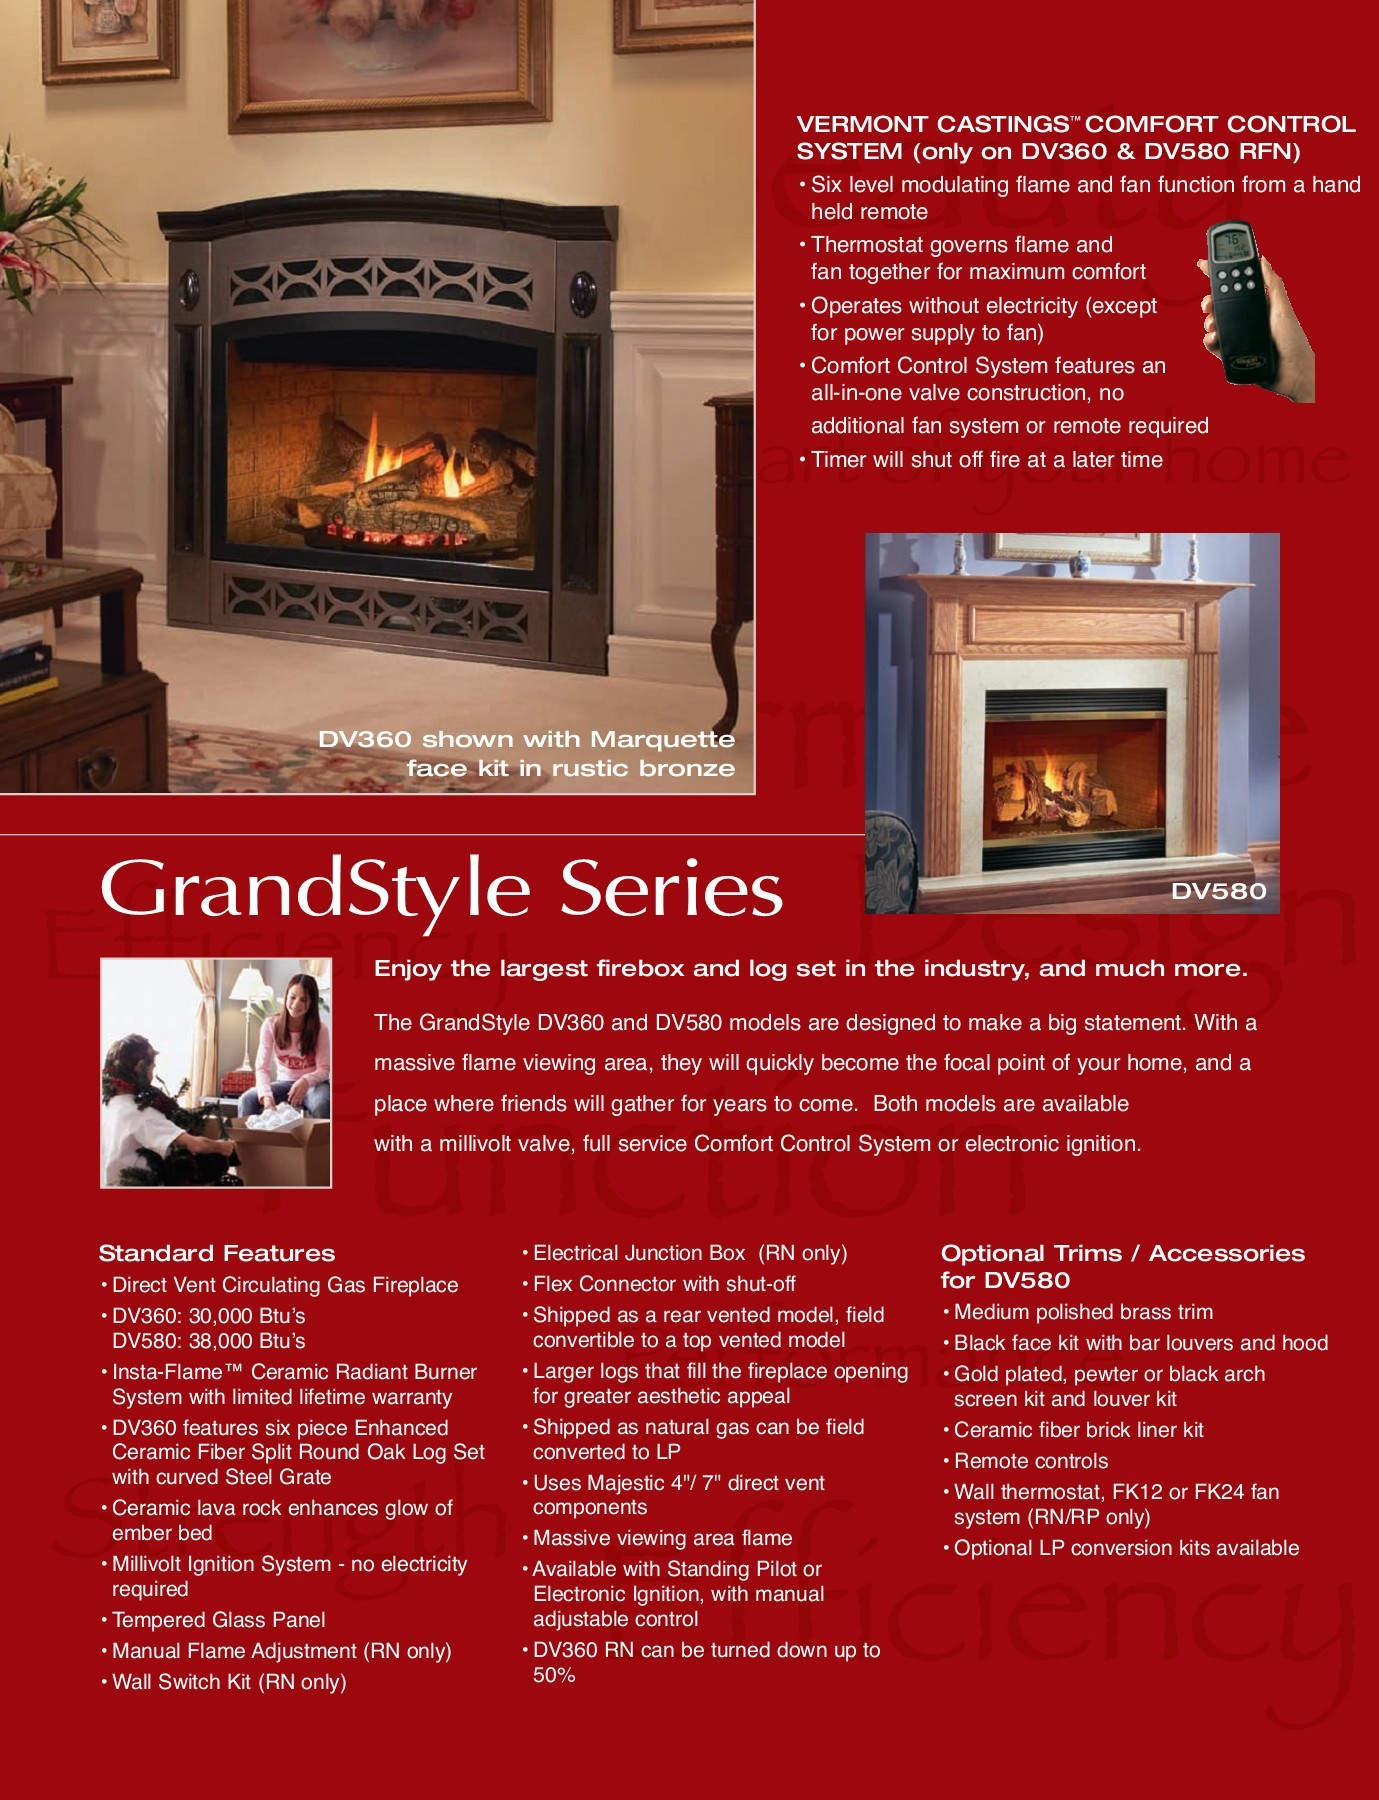 Gas Fireplace Kits New Dv360 Dv580 Fireplaces by Mario Sales Service and